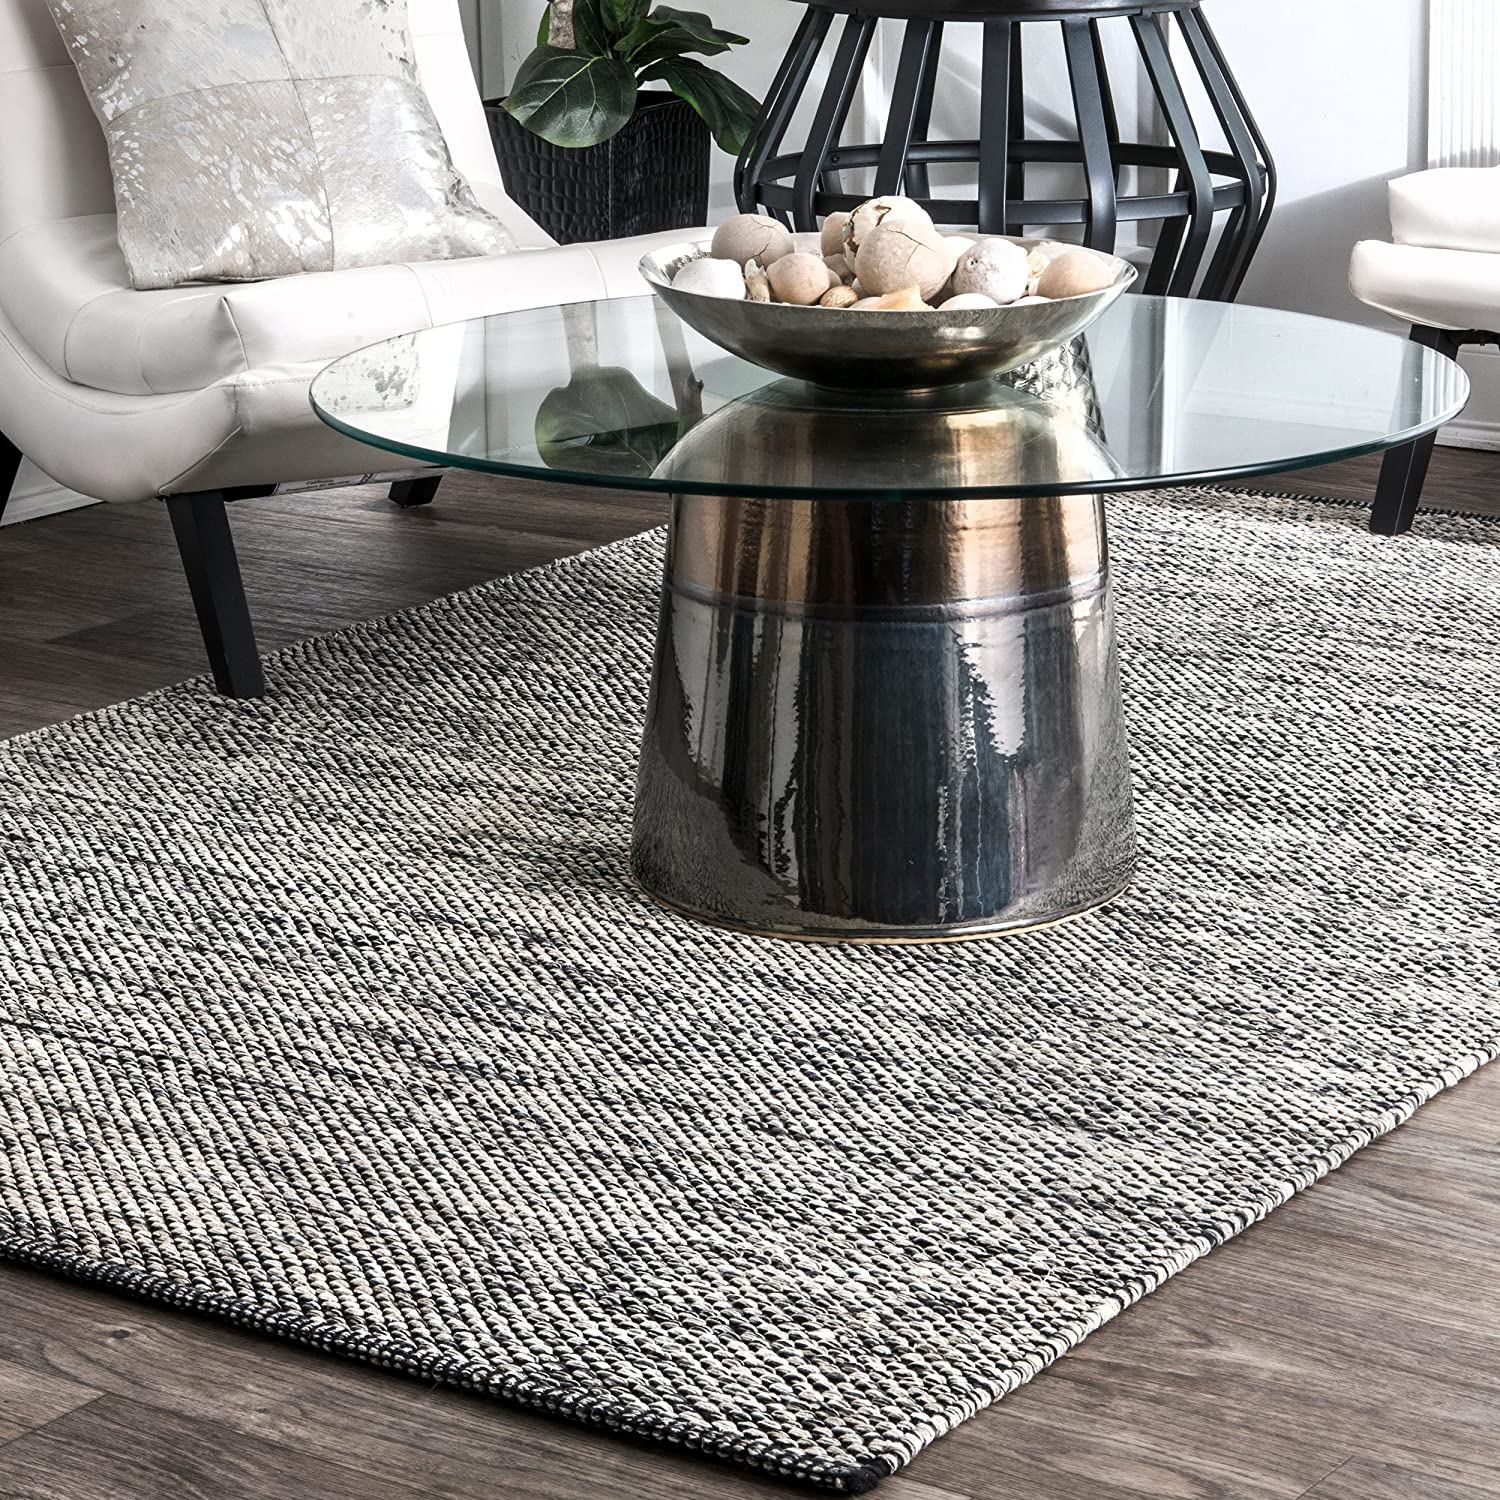 supreme nuLOOM Hand Woven Area Rug Grey Outlet SALE 5' x 3'